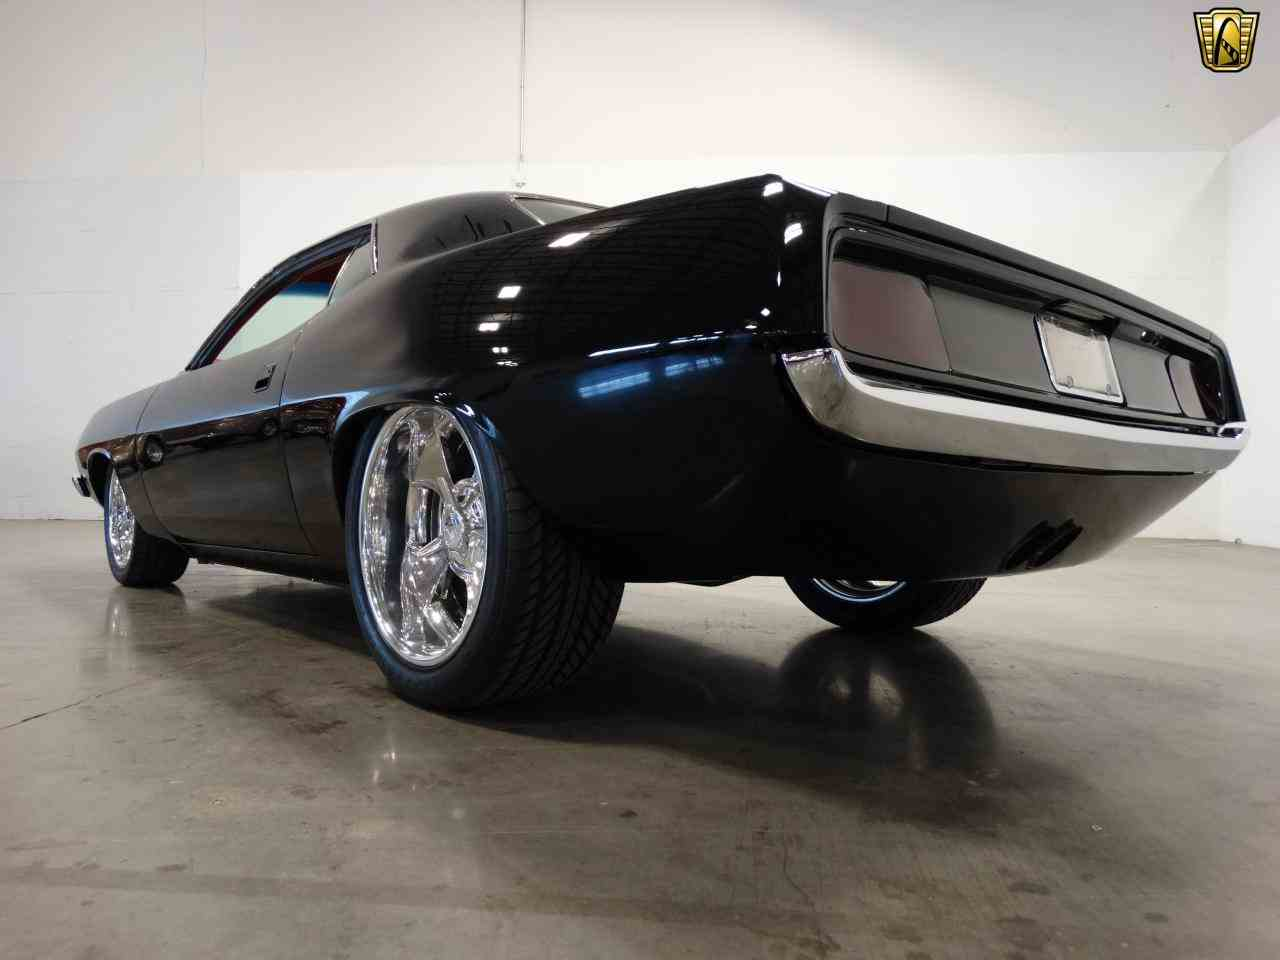 Large Picture of '71 Plymouth Cuda located in La Vergne Tennessee - $130,000.00 - KDTL